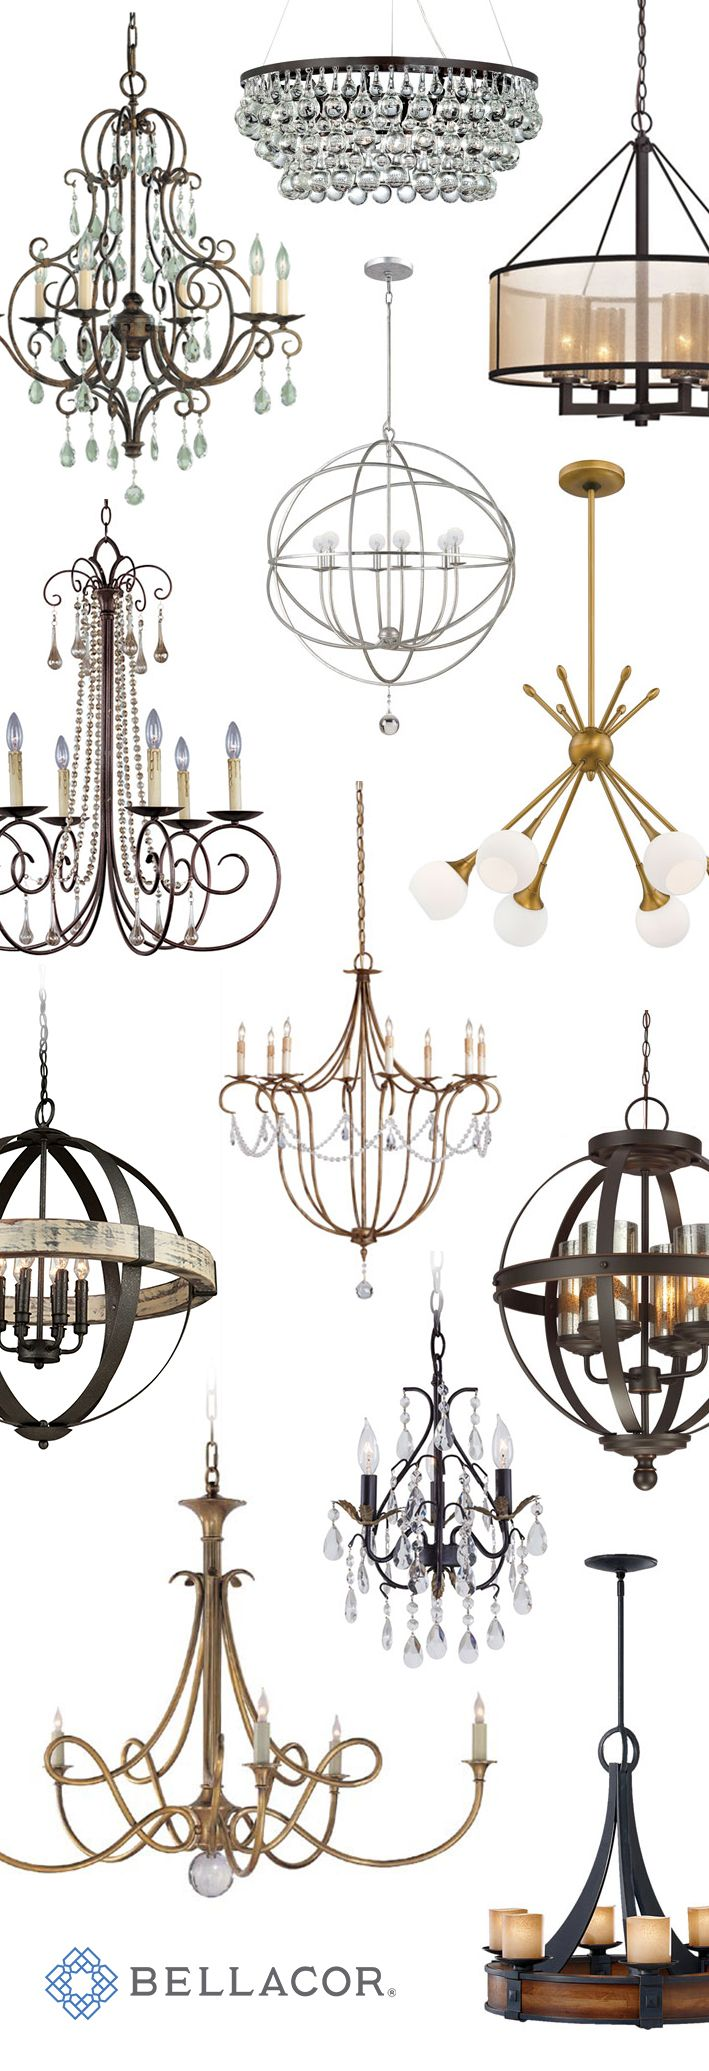 A chandelier from bellacor can make a great focal point in your a chandelier from bellacor can make a great focal point in your space at up arubaitofo Images